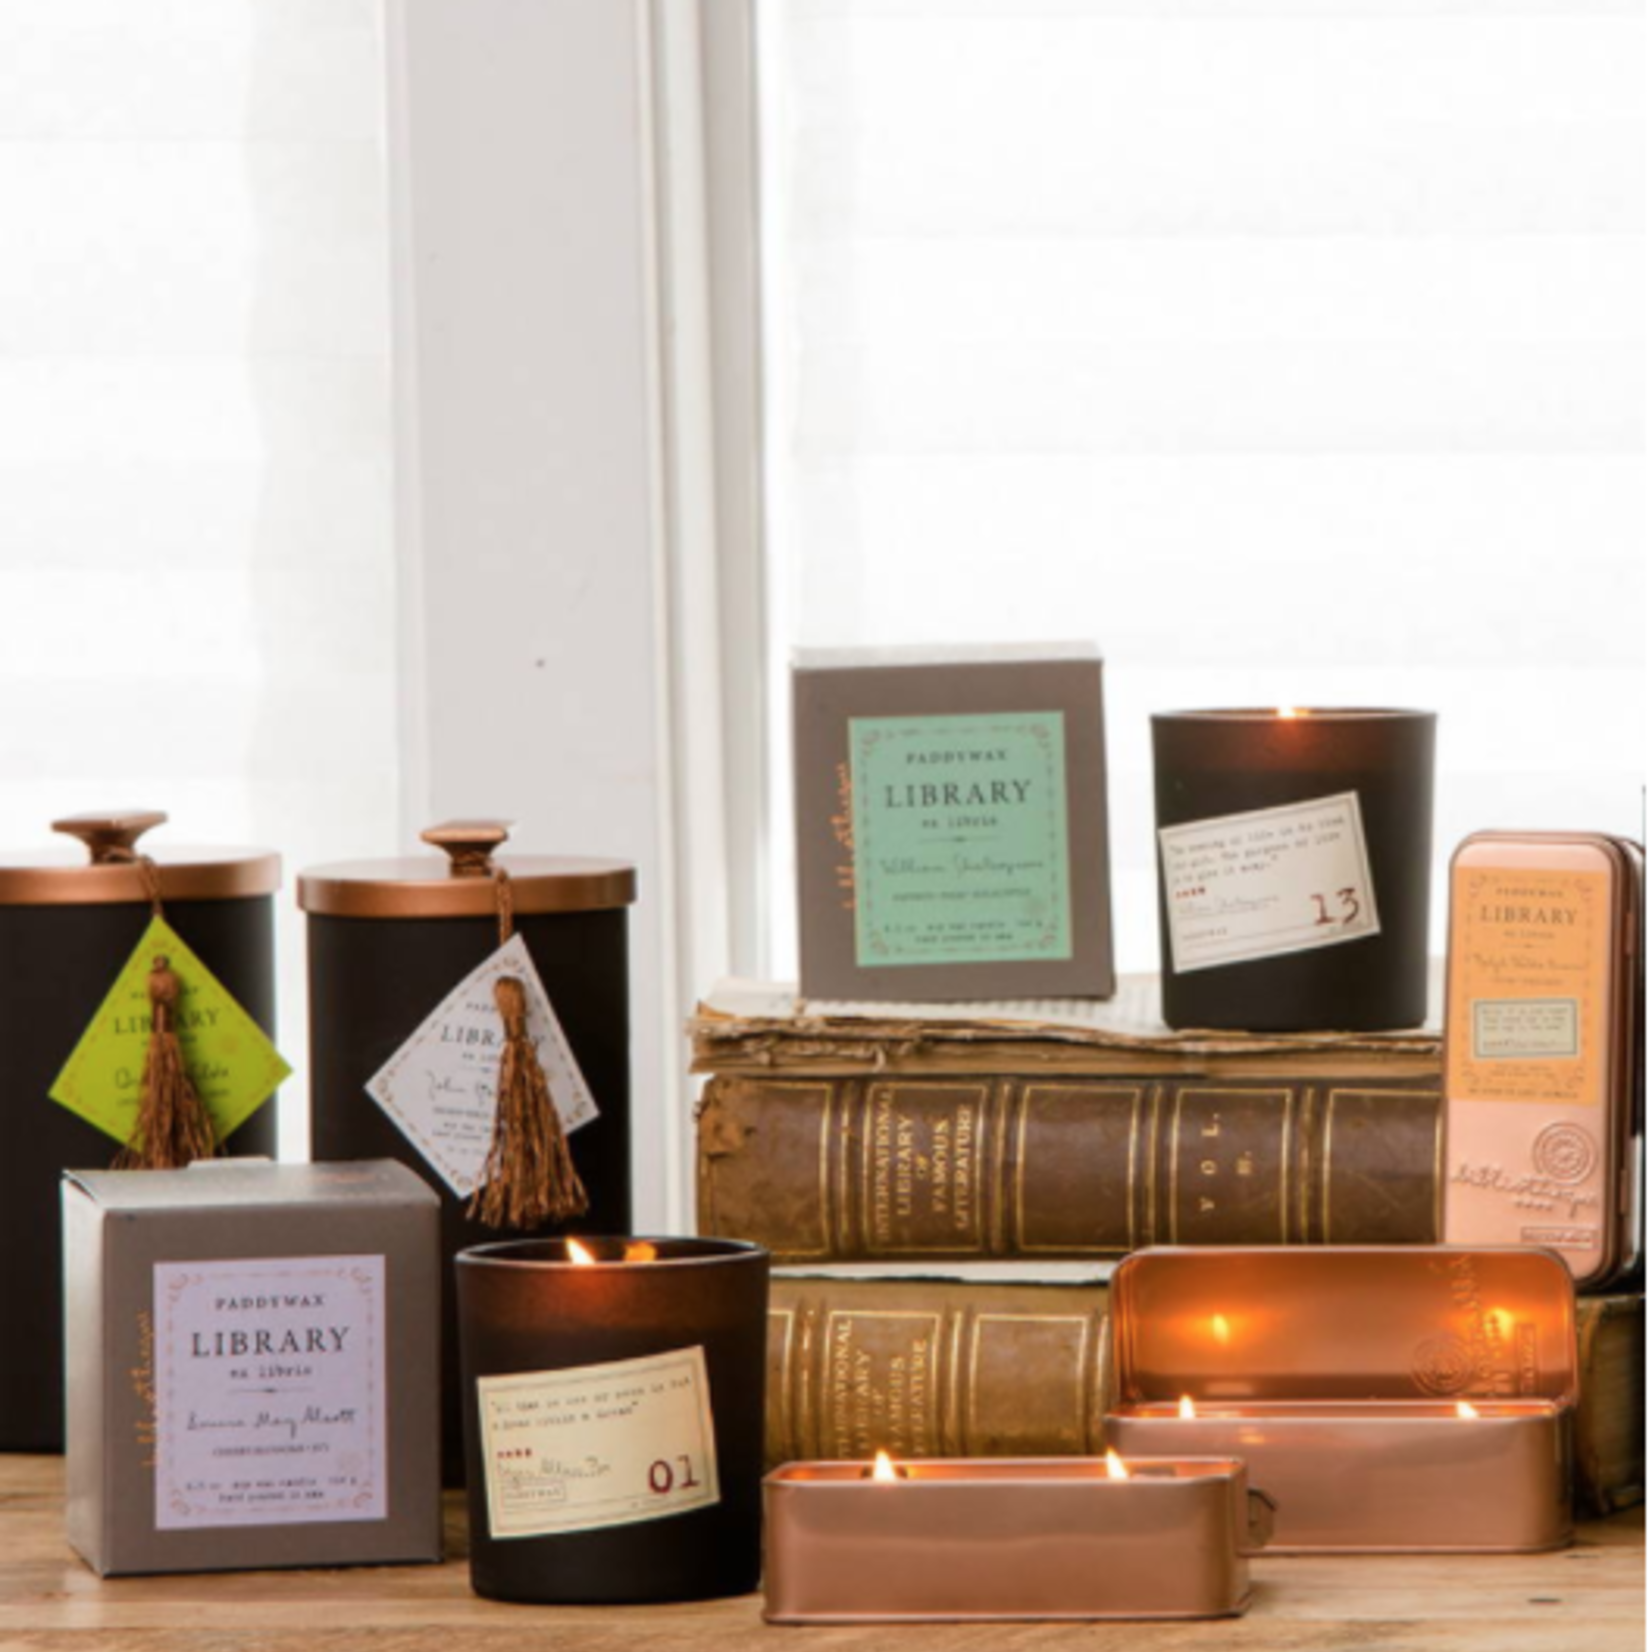 Paddywax Library Candle Series